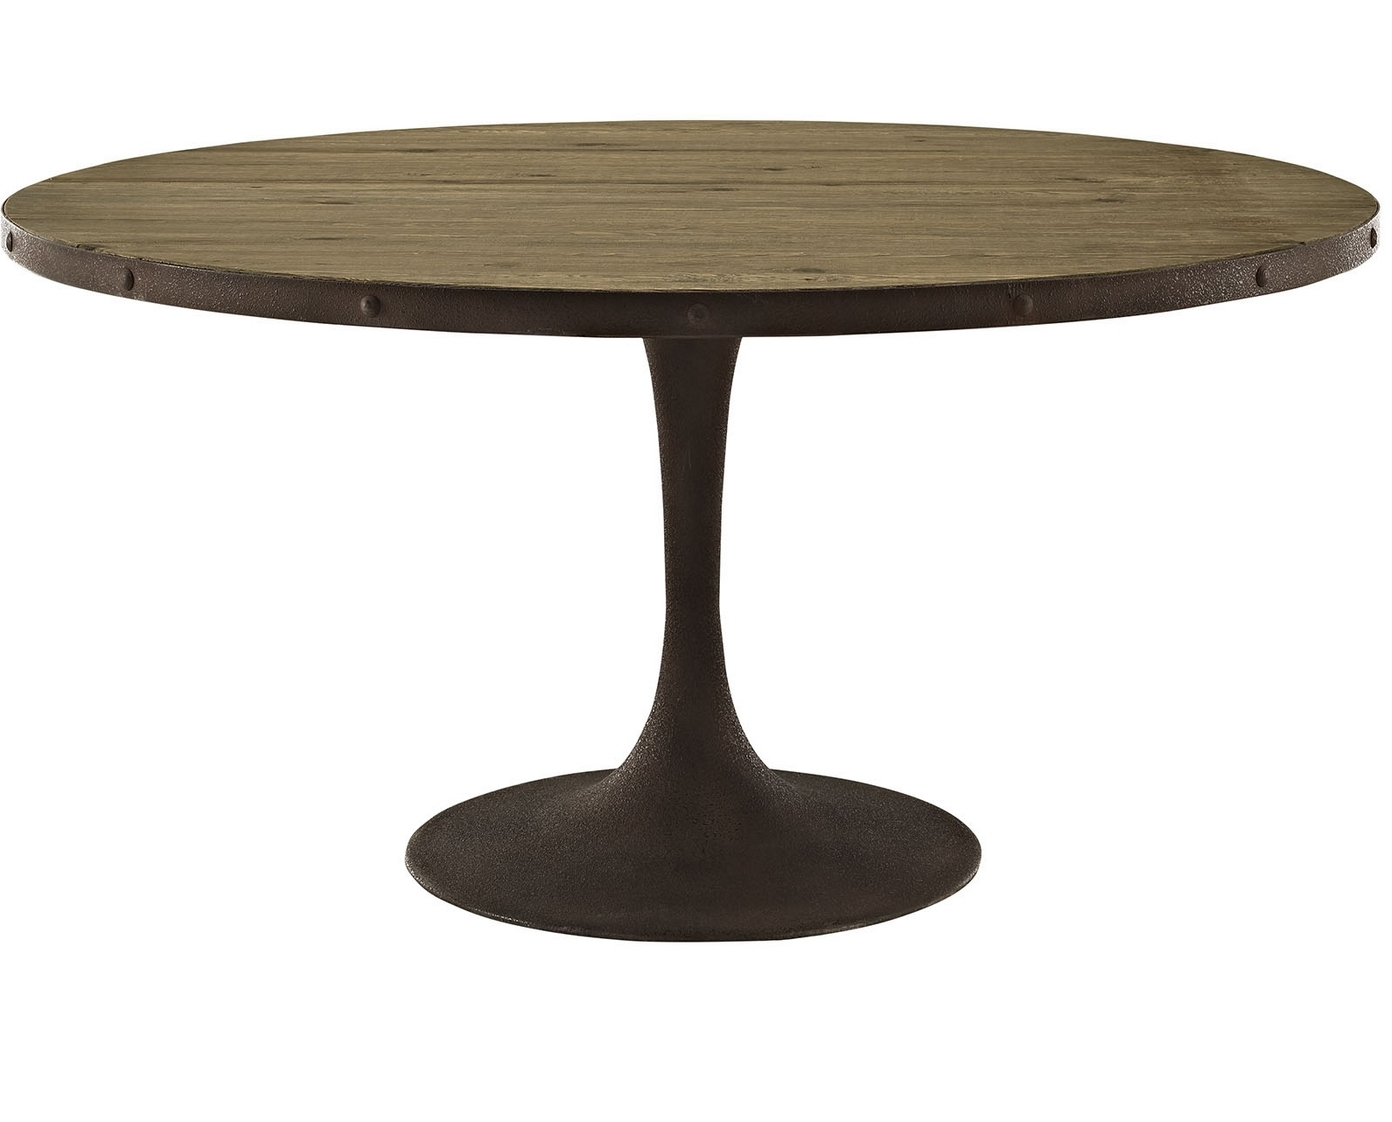 Leaf 60 Inch Round Pedestal Dining Table Raysa House